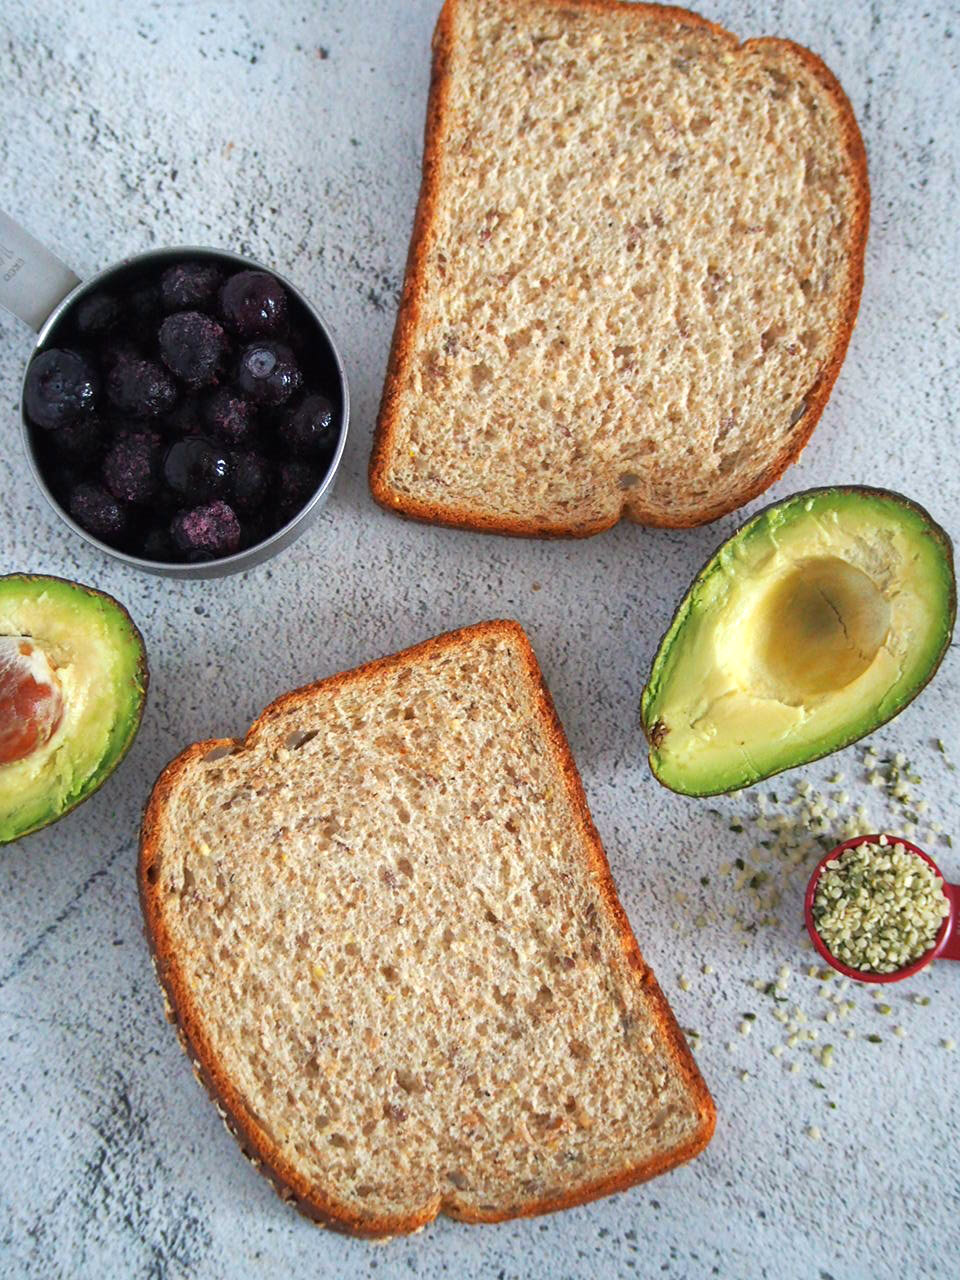 Whole wheat bread slices, avocado, and blueberries for making breakfast toasts.